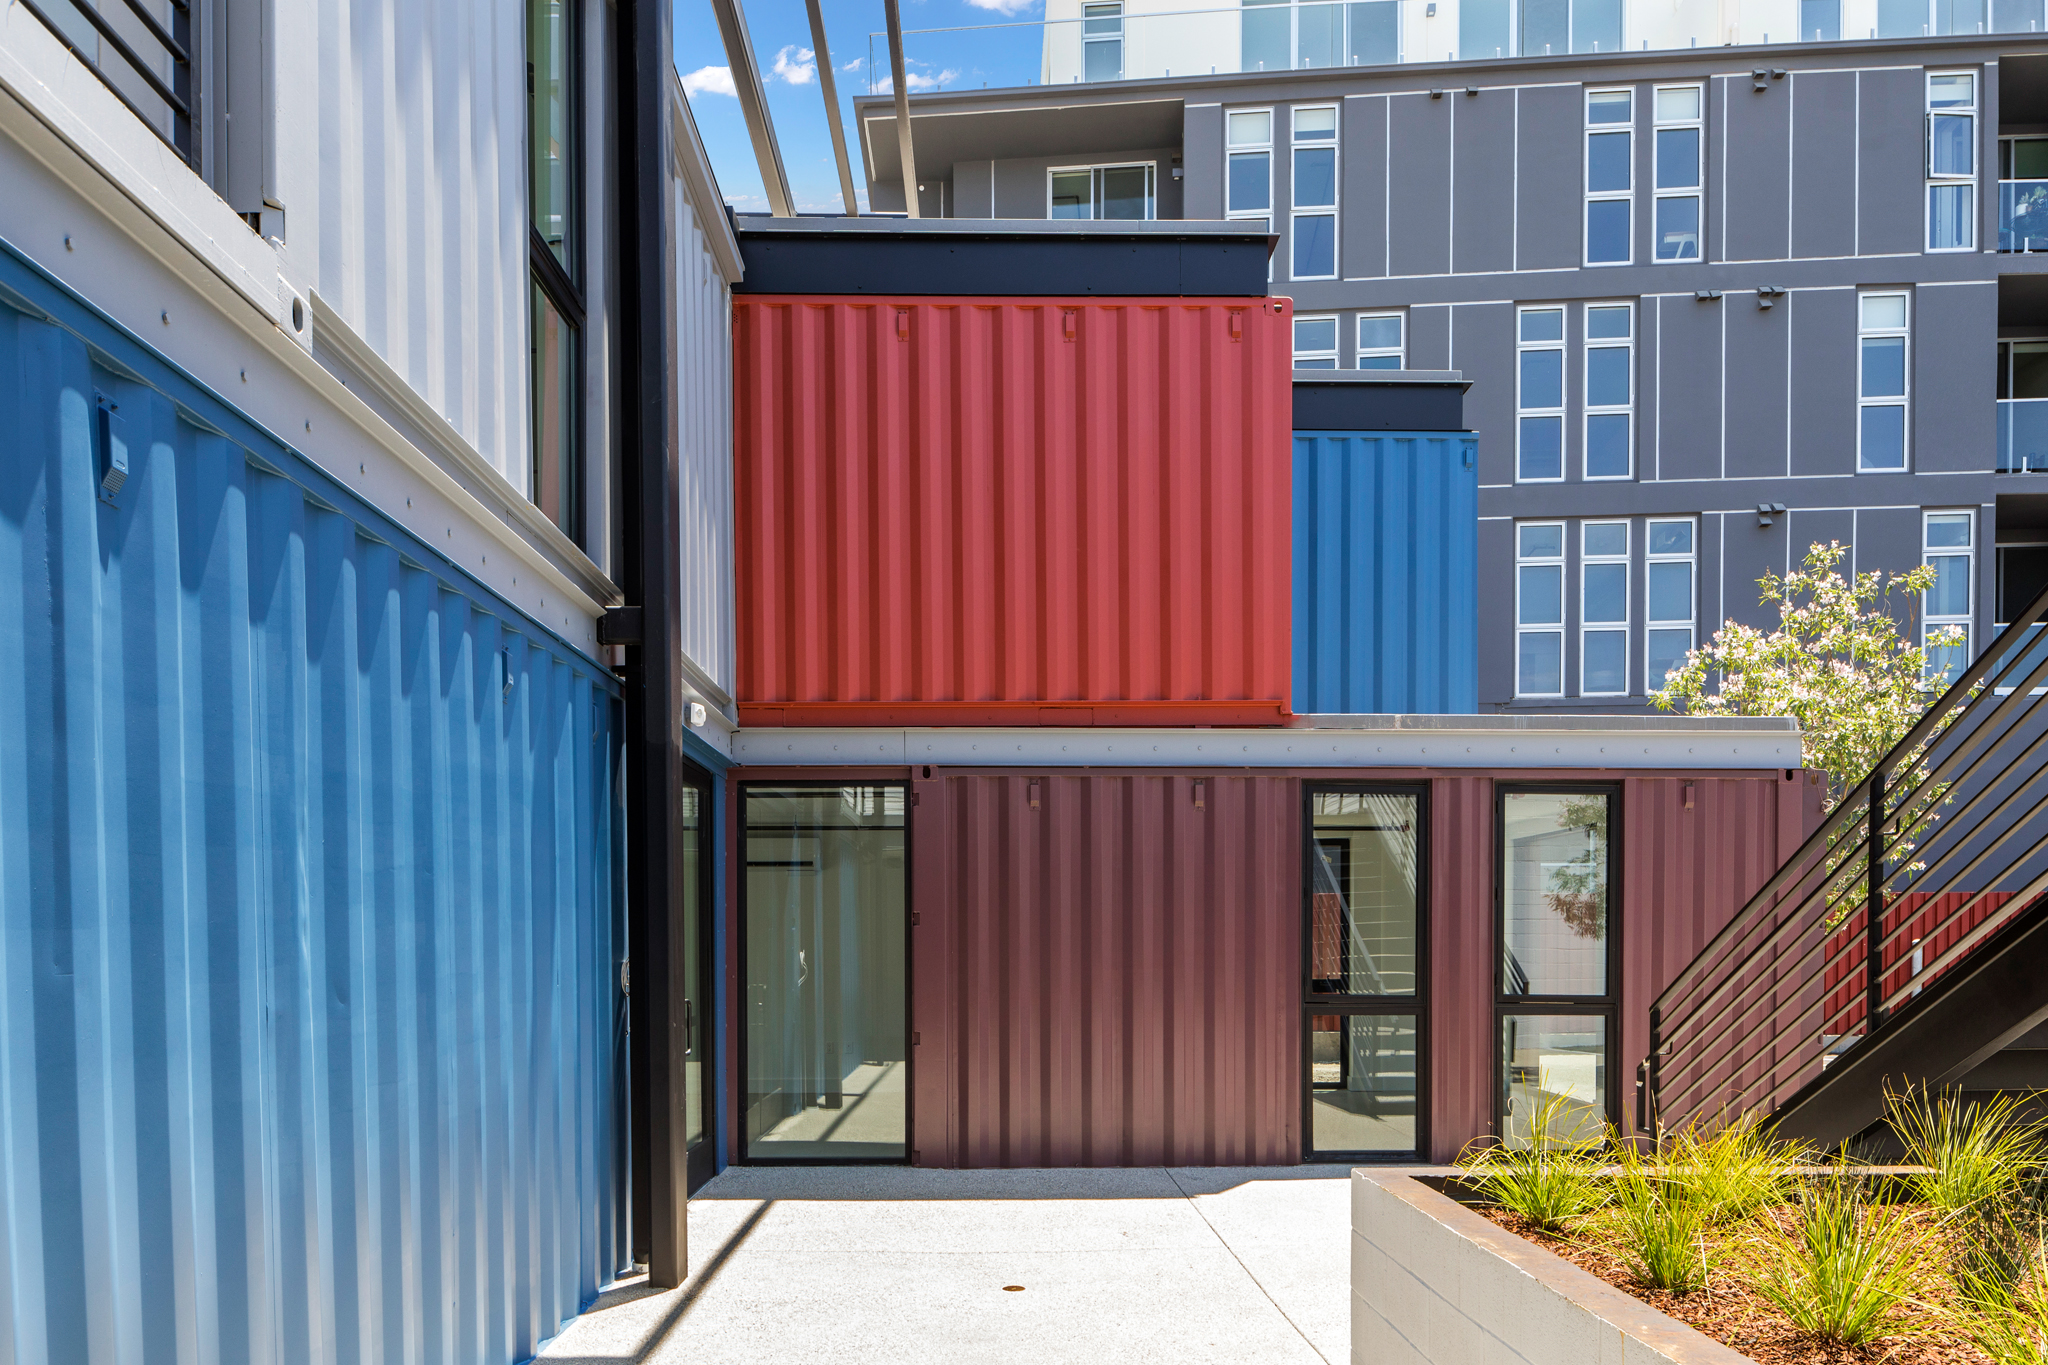 The Container & Art_108